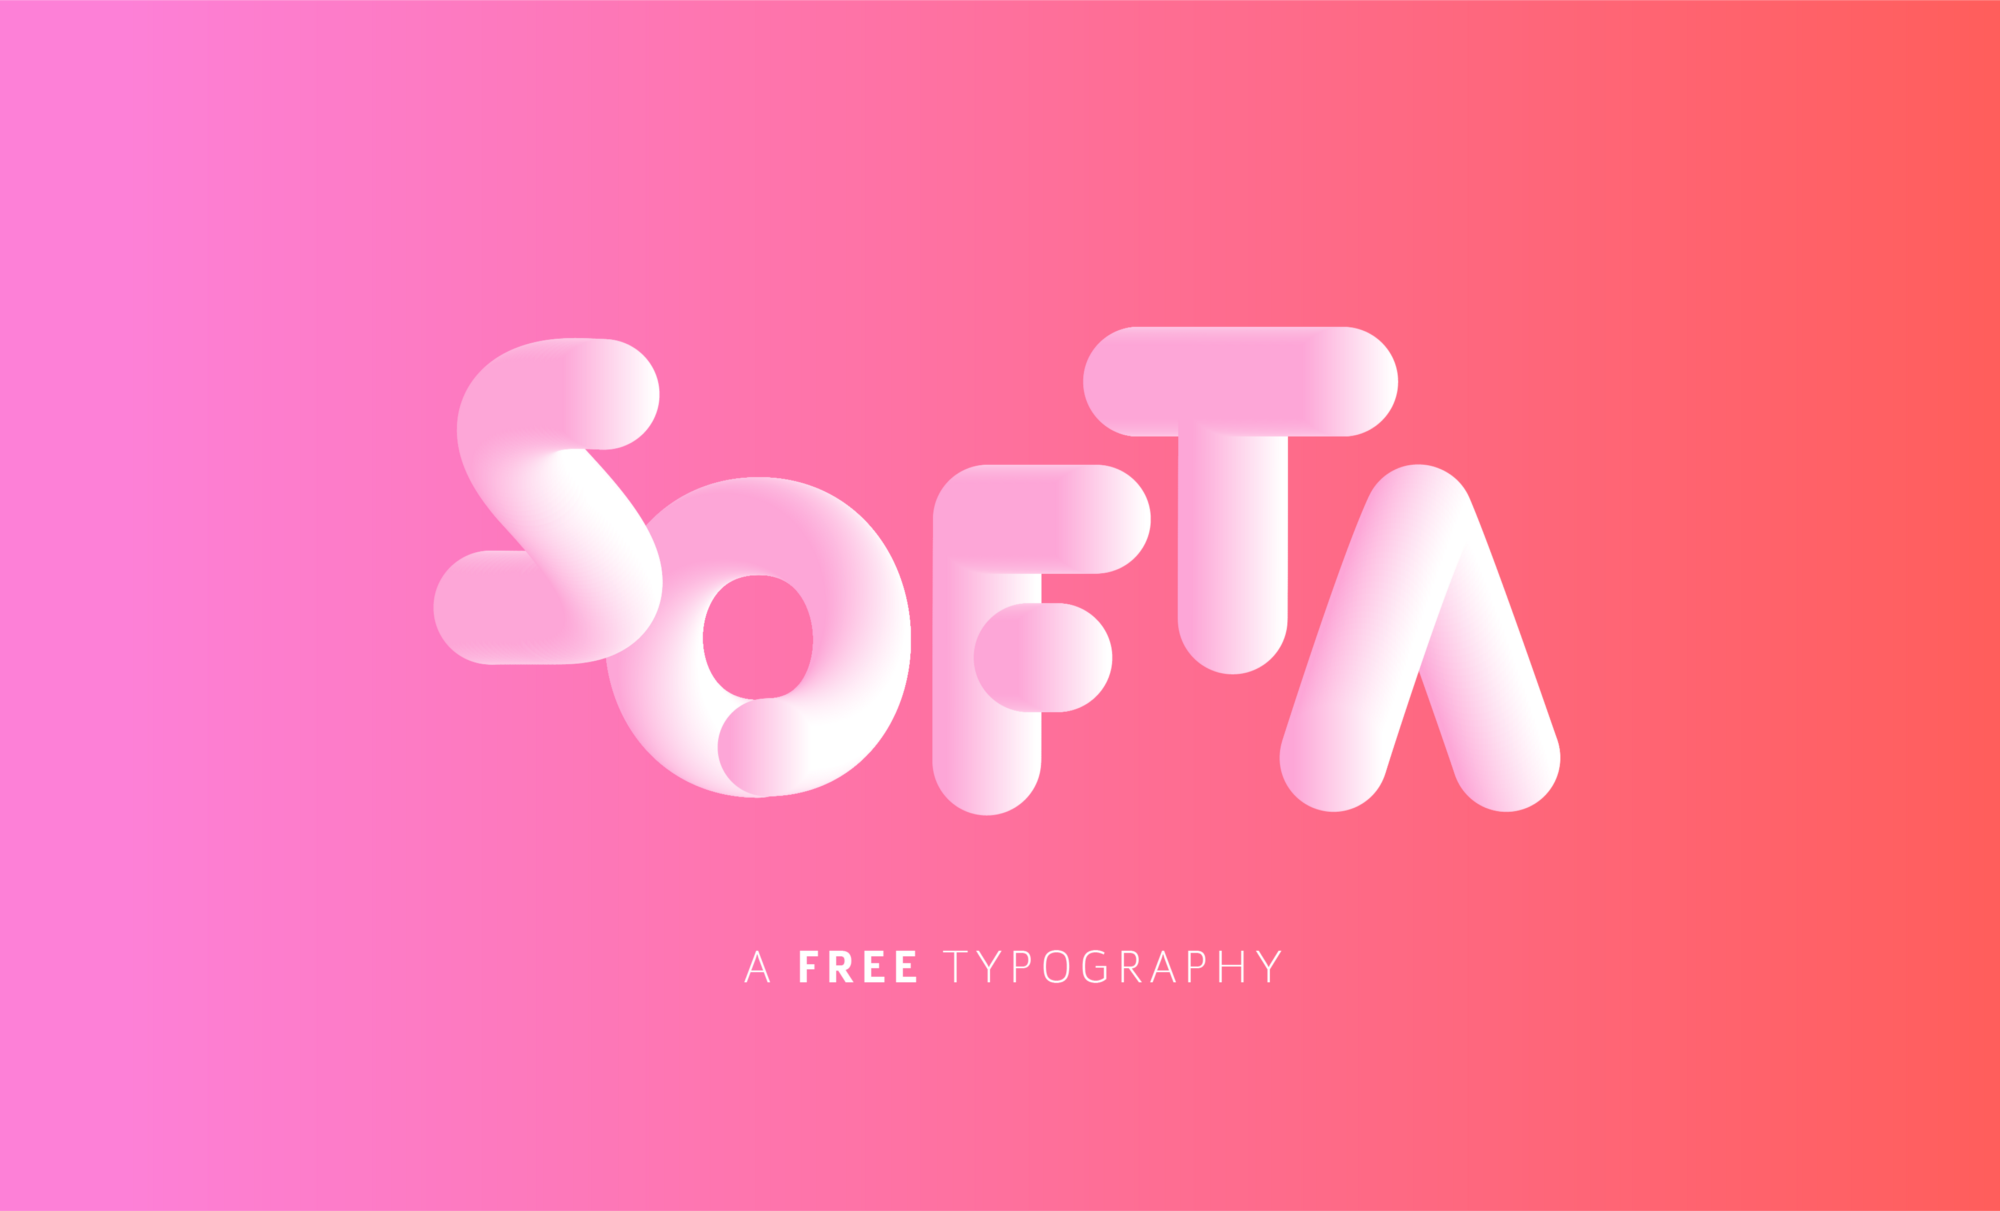 Softa Free Typography By Justin Vin Adrian Doe